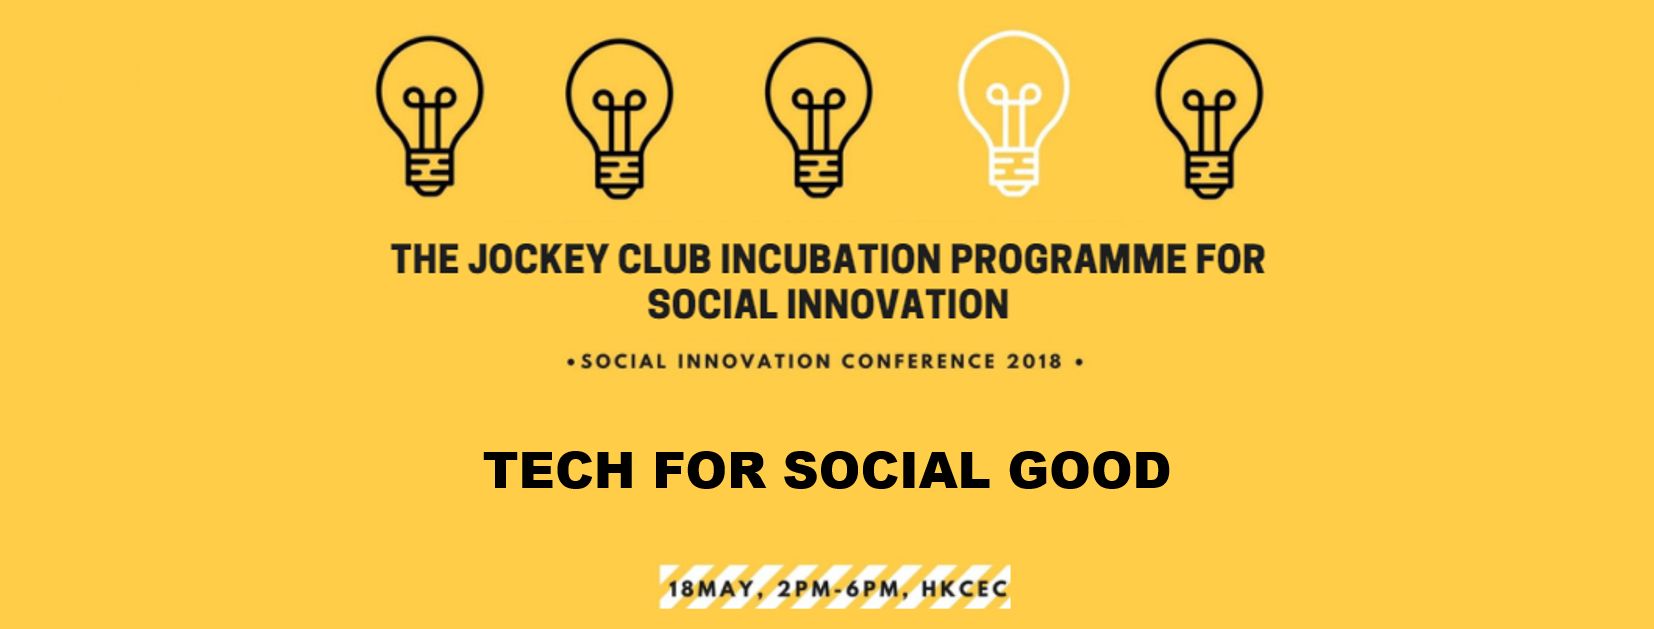 Social Innovation Conference 2018